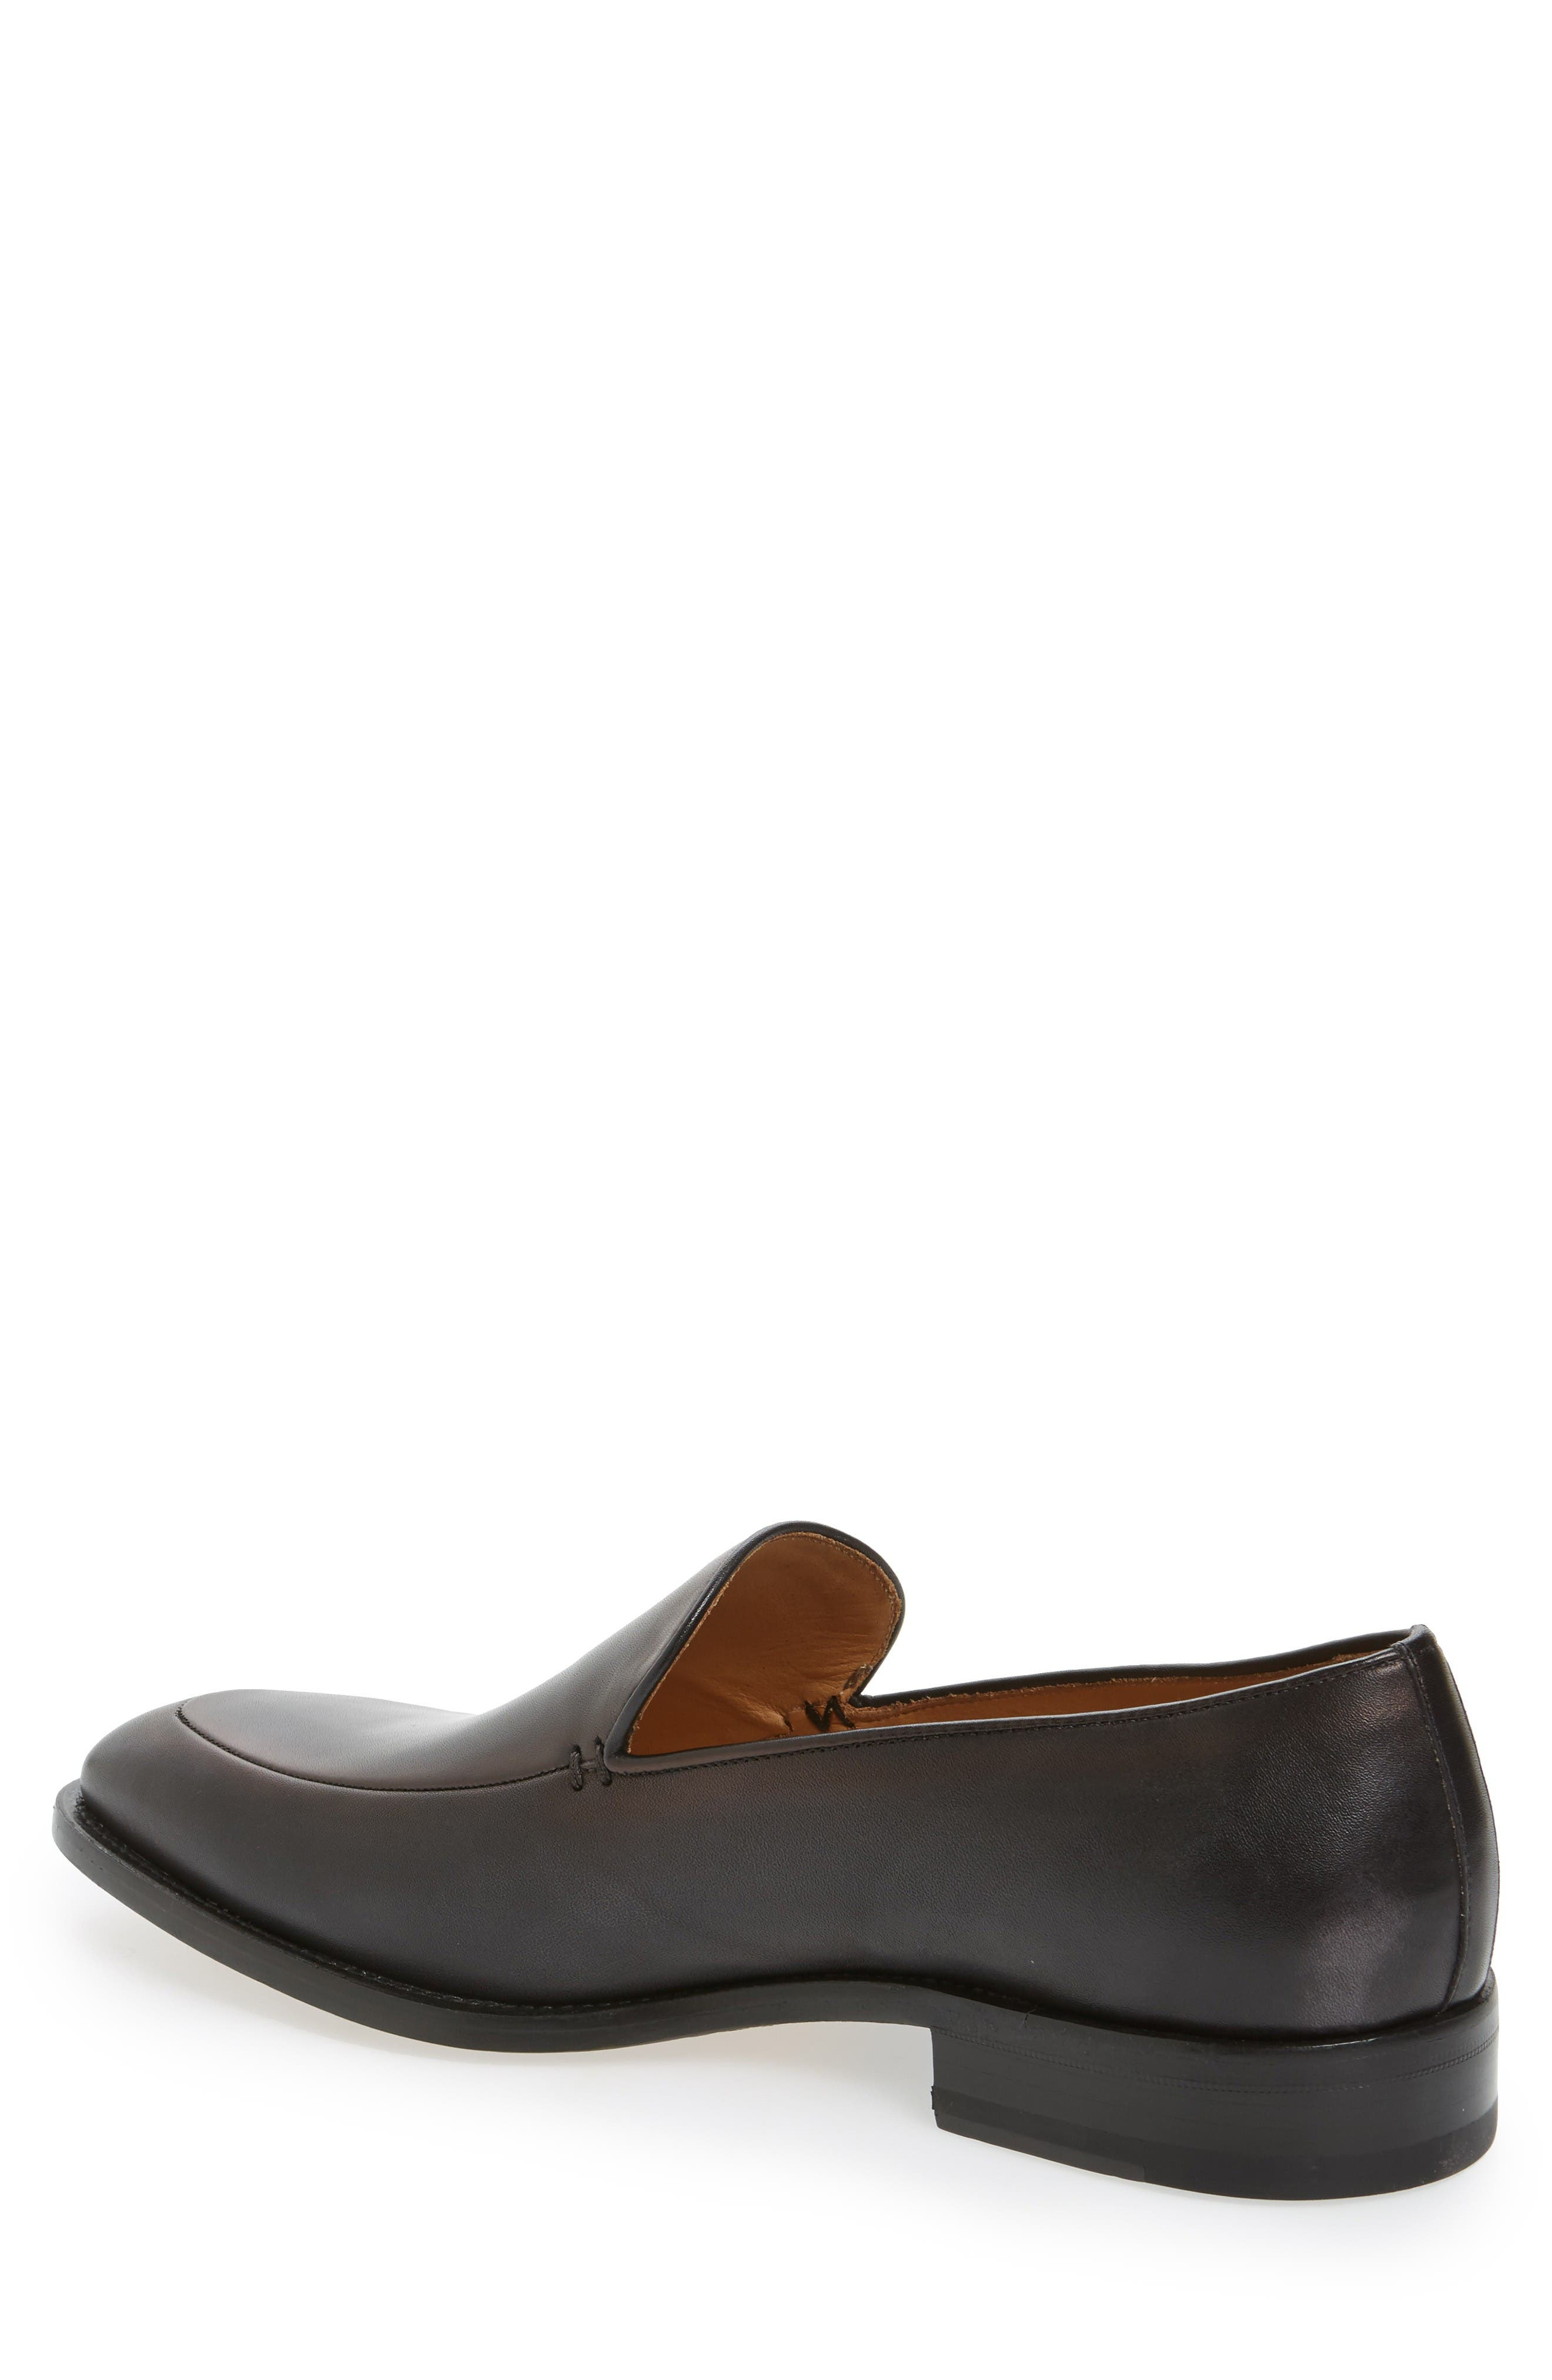 Strauss Venetian Loafer,                             Alternate thumbnail 2, color,                             Graphite Leather